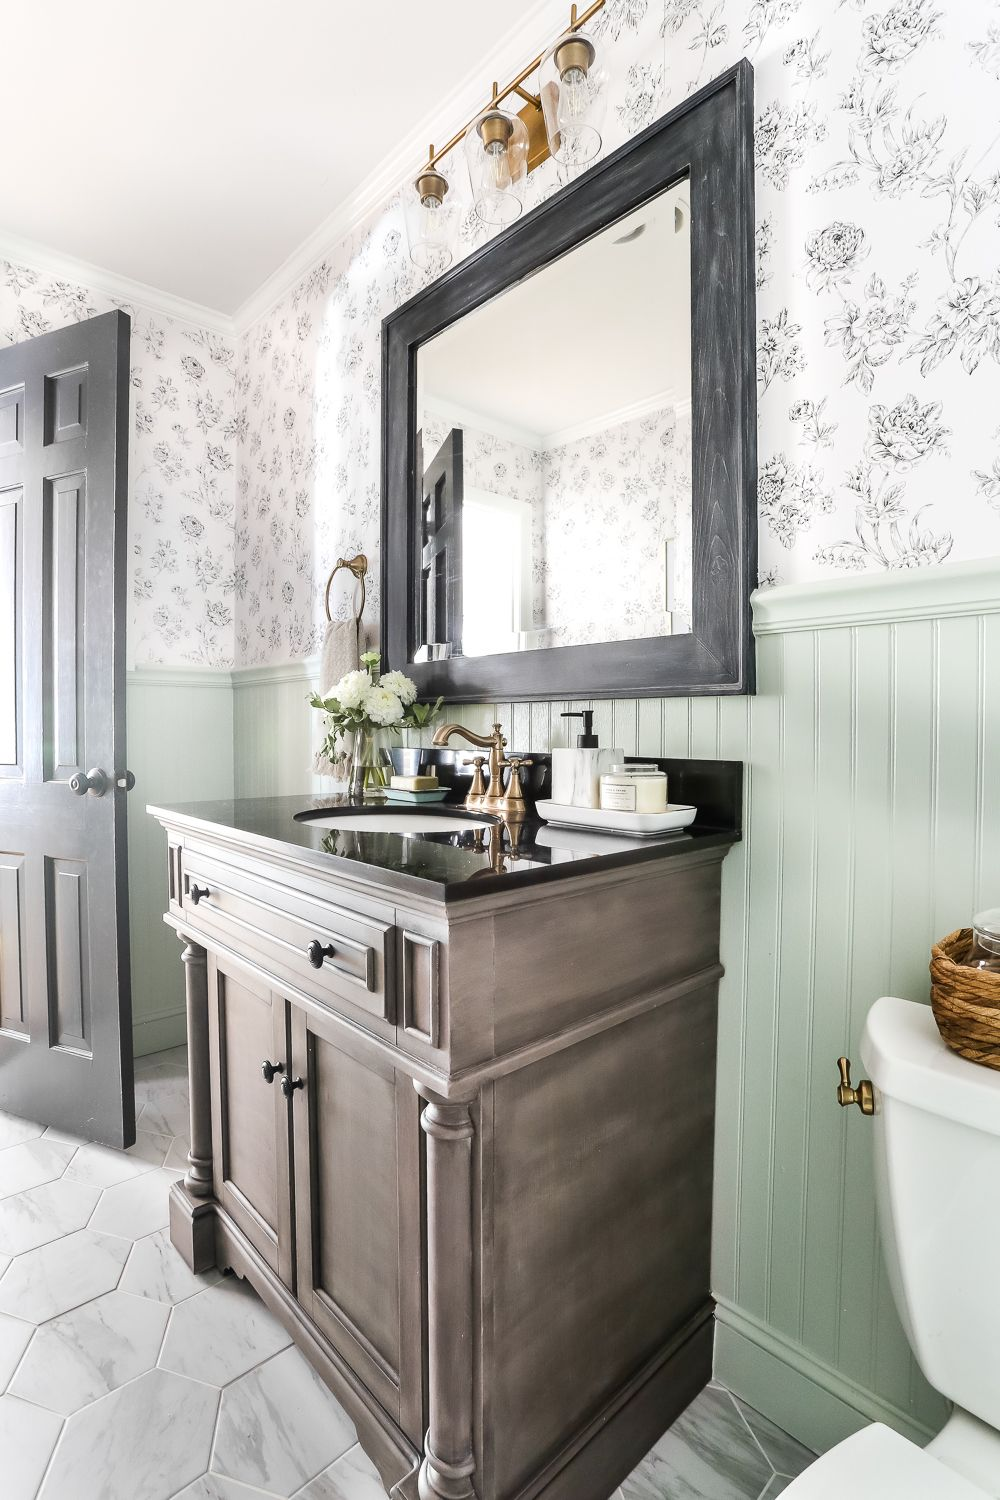 Aqua Meets Urban Powder Room Reveal Bathroom wallpaper